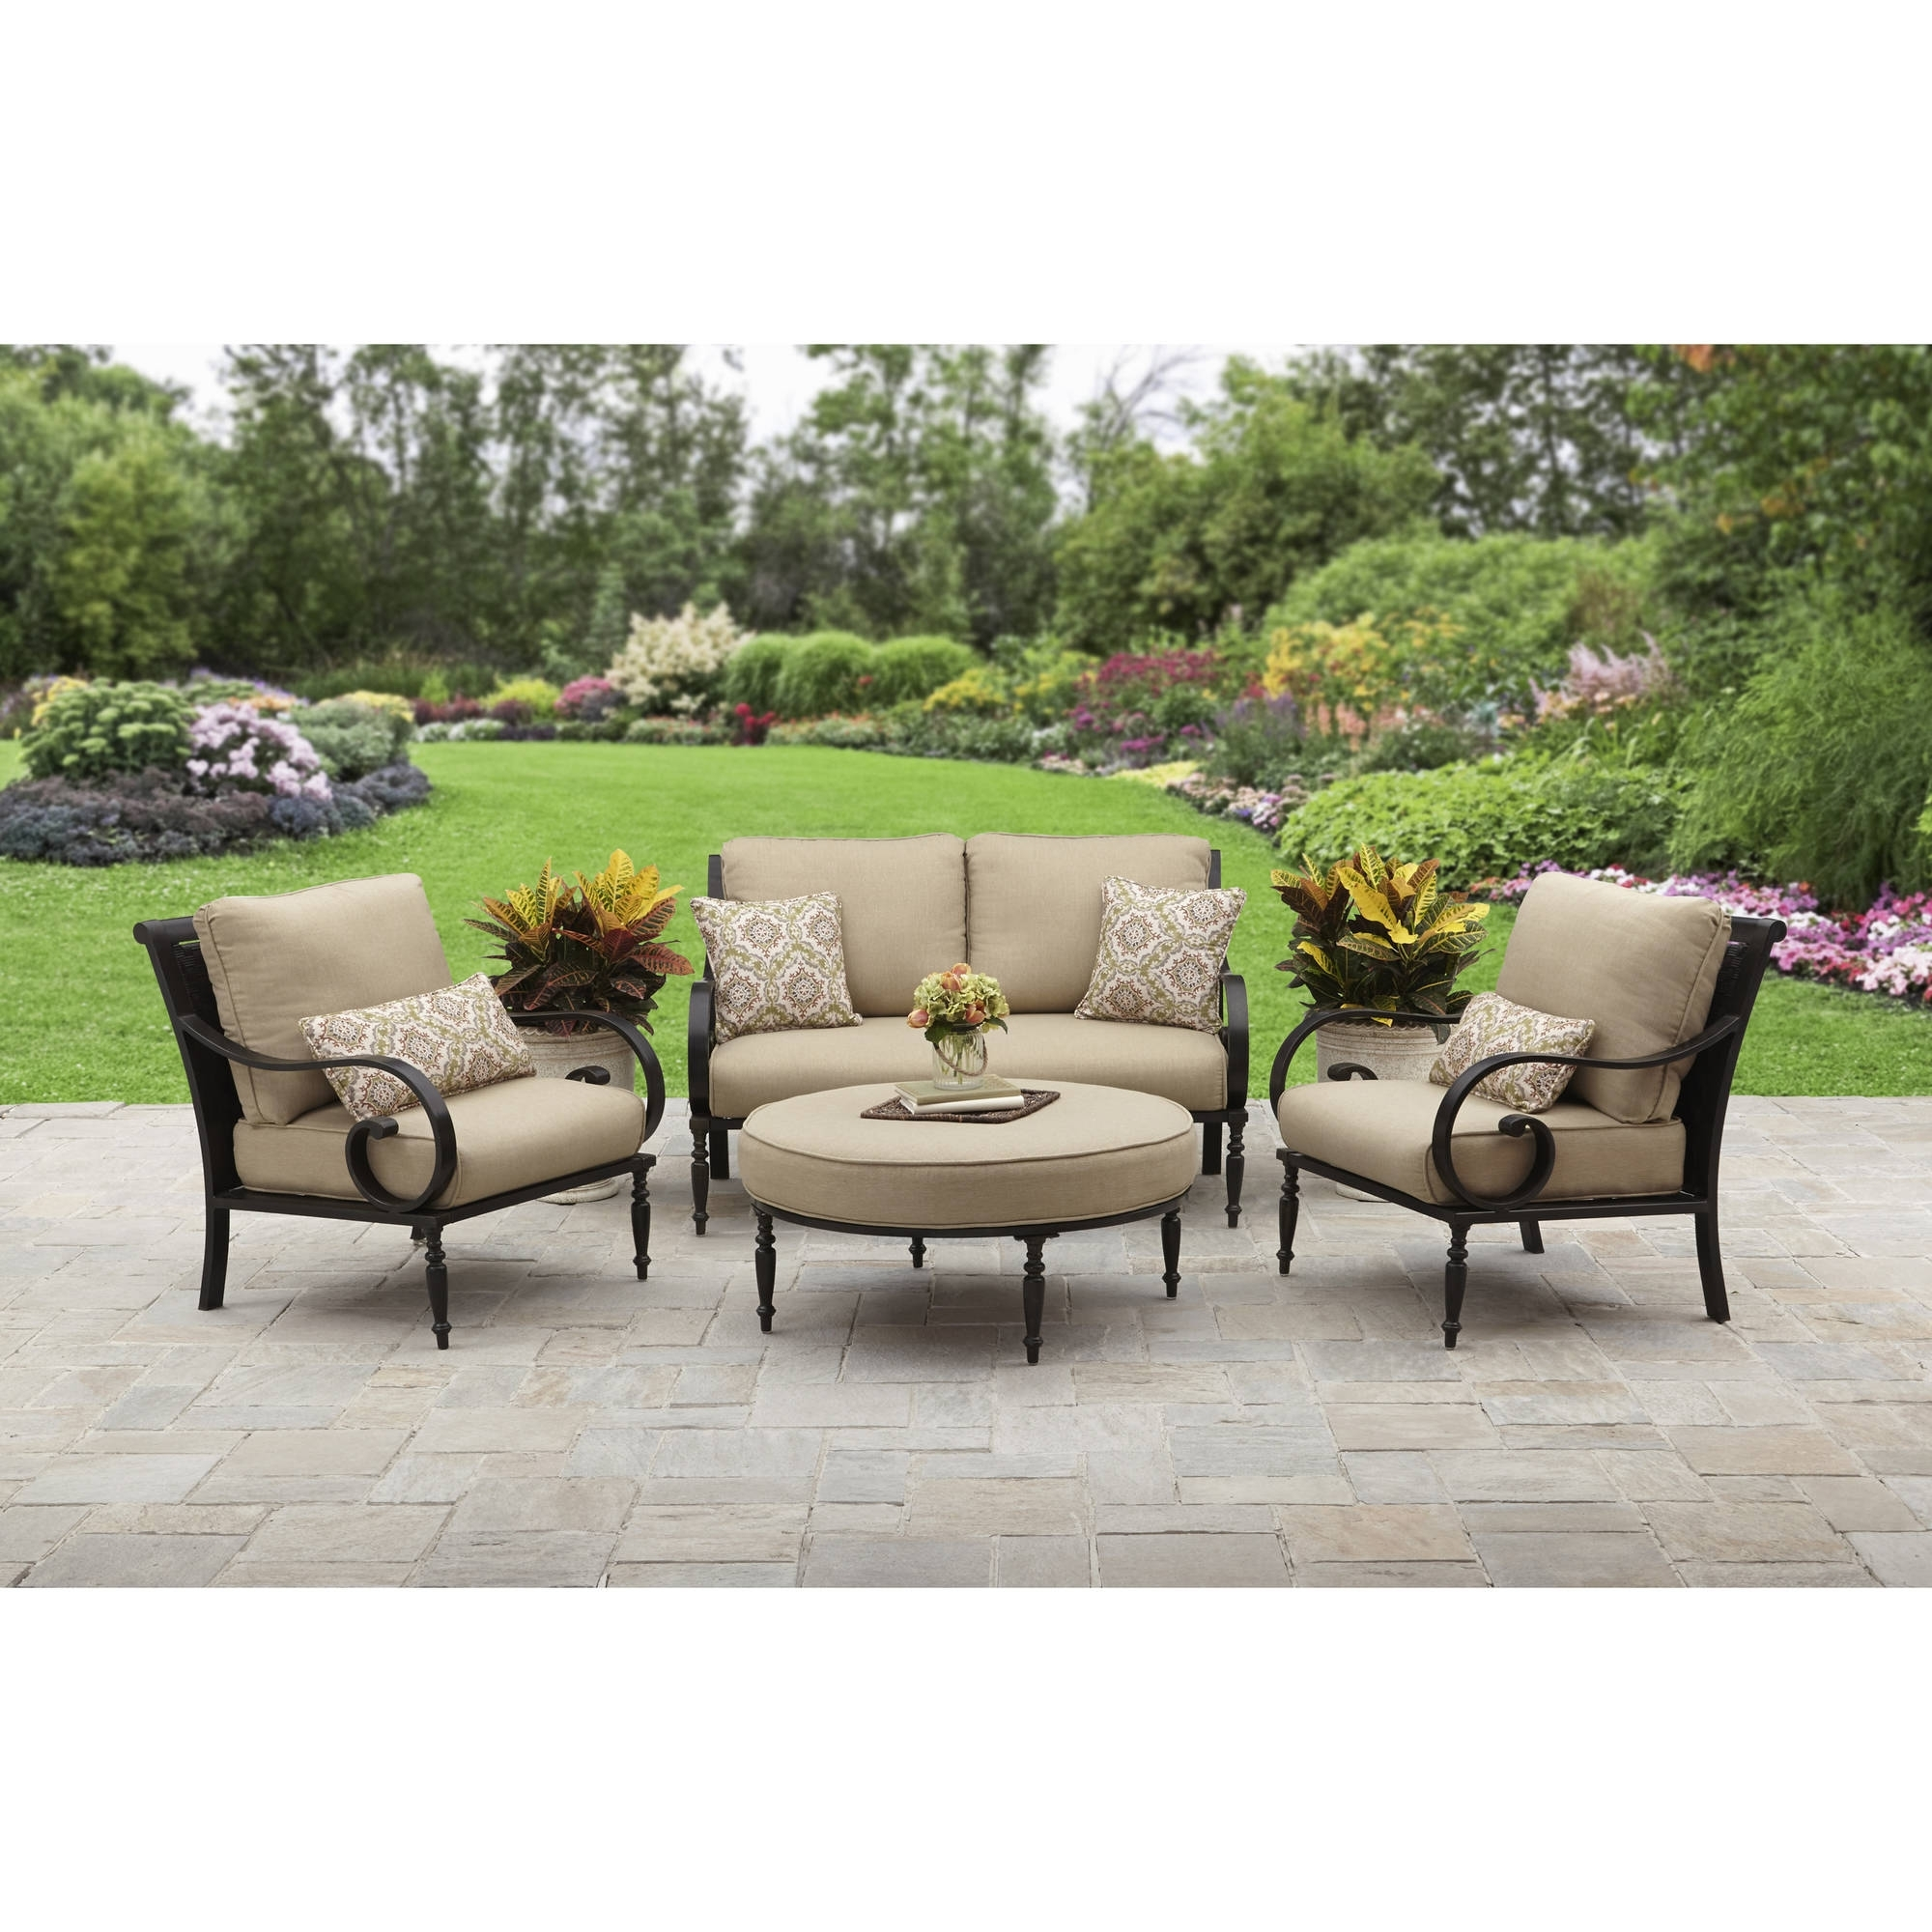 Better Homes And Gardens Englewood Heights Ii Aluminum 4 Piece Throughout Widely Used Patio Conversation Sets For Small Spaces (View 2 of 15)